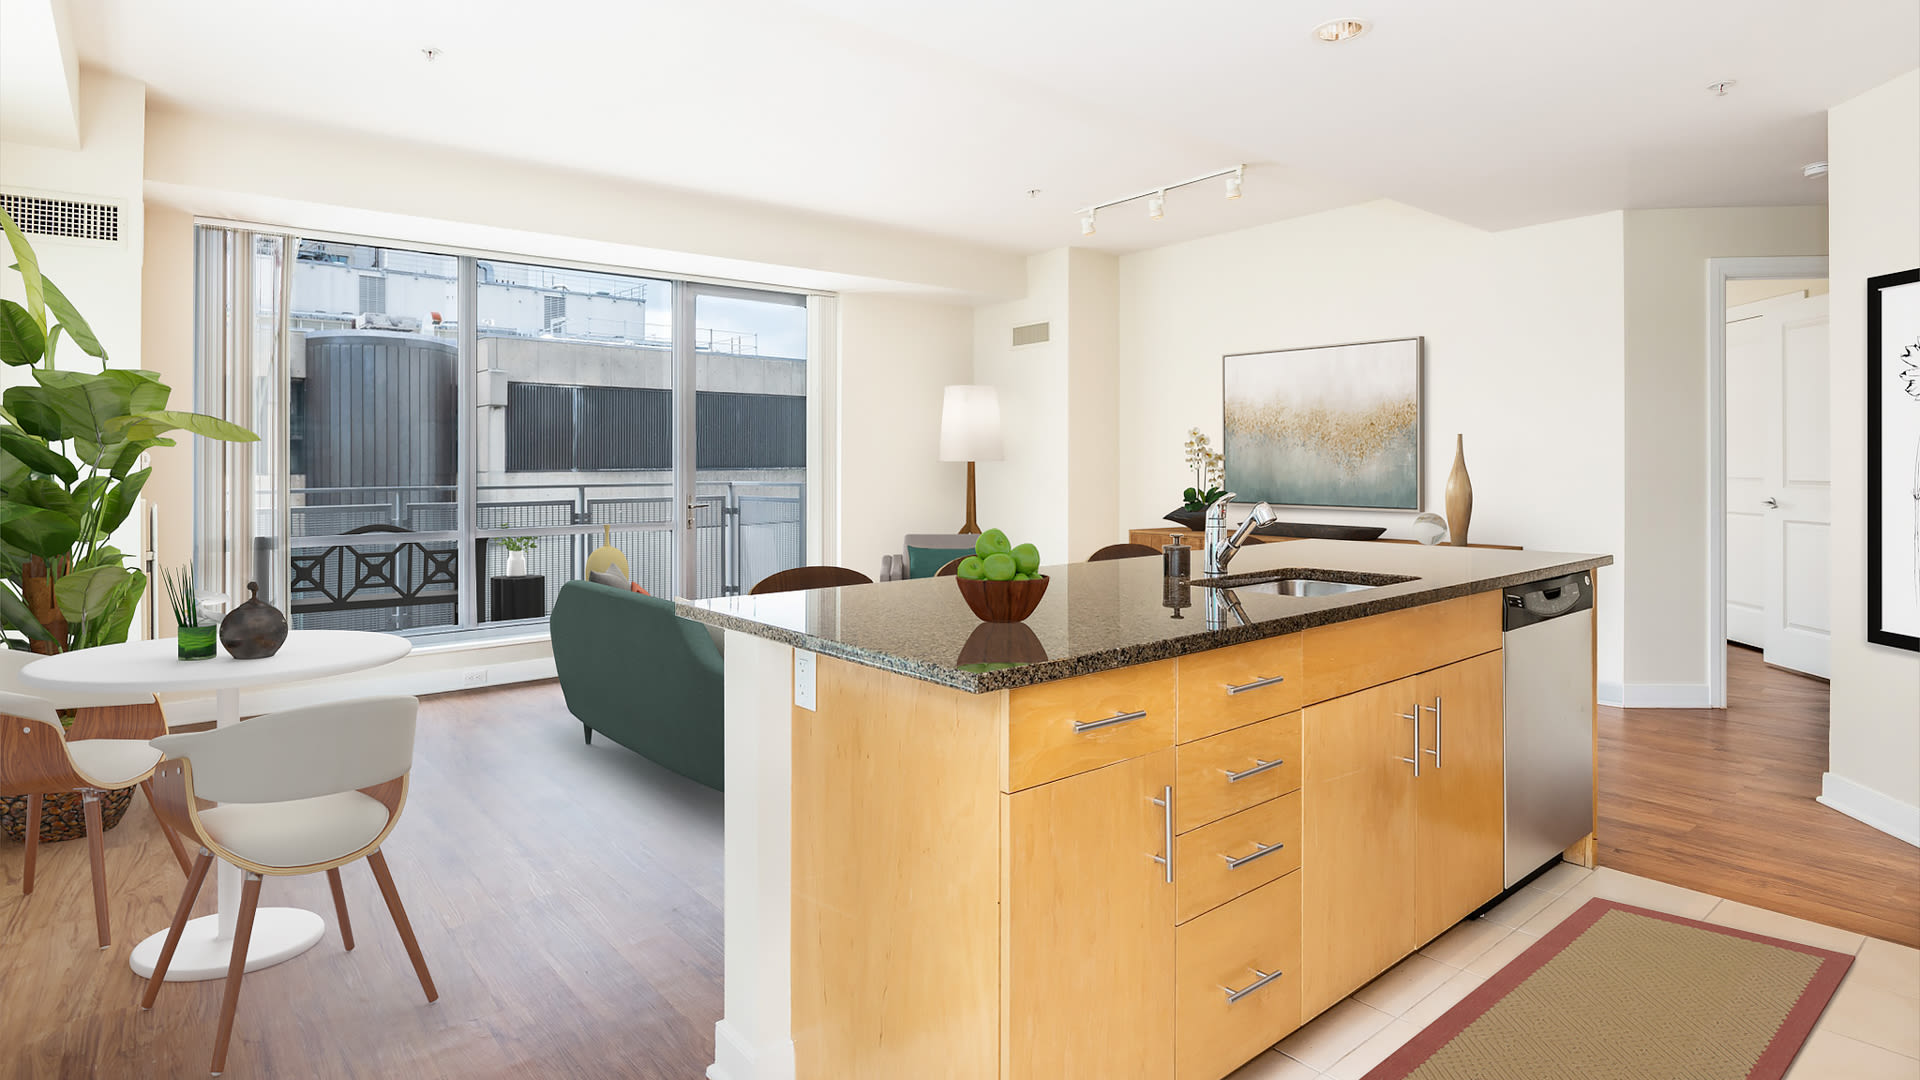 The West End Apartments - Vesta Kitchen and Living Room with Floor-to-Ceiling Windows